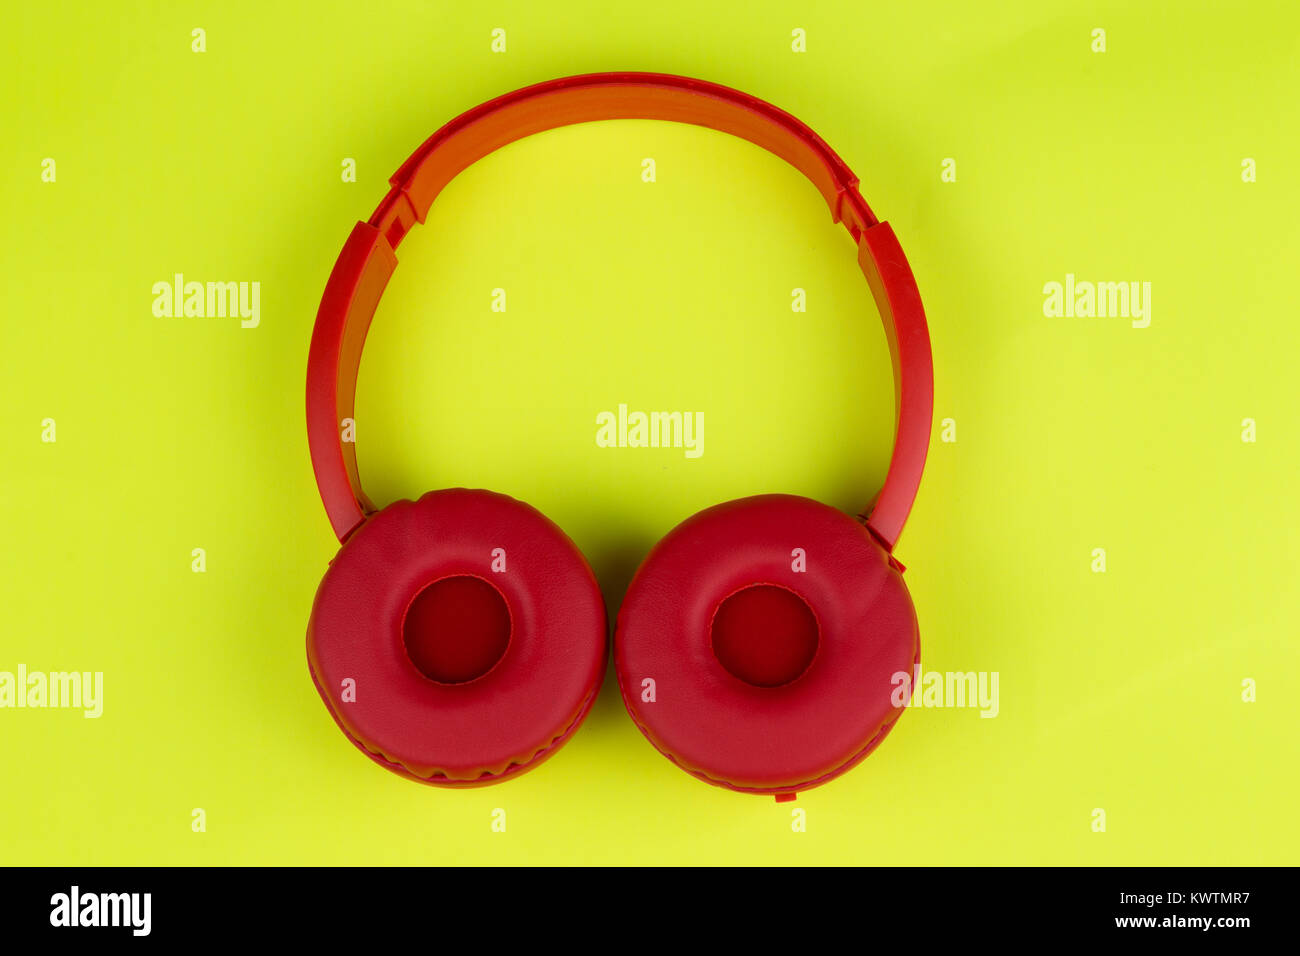 A colorful top view of a tangerine red headphones - Stock Image